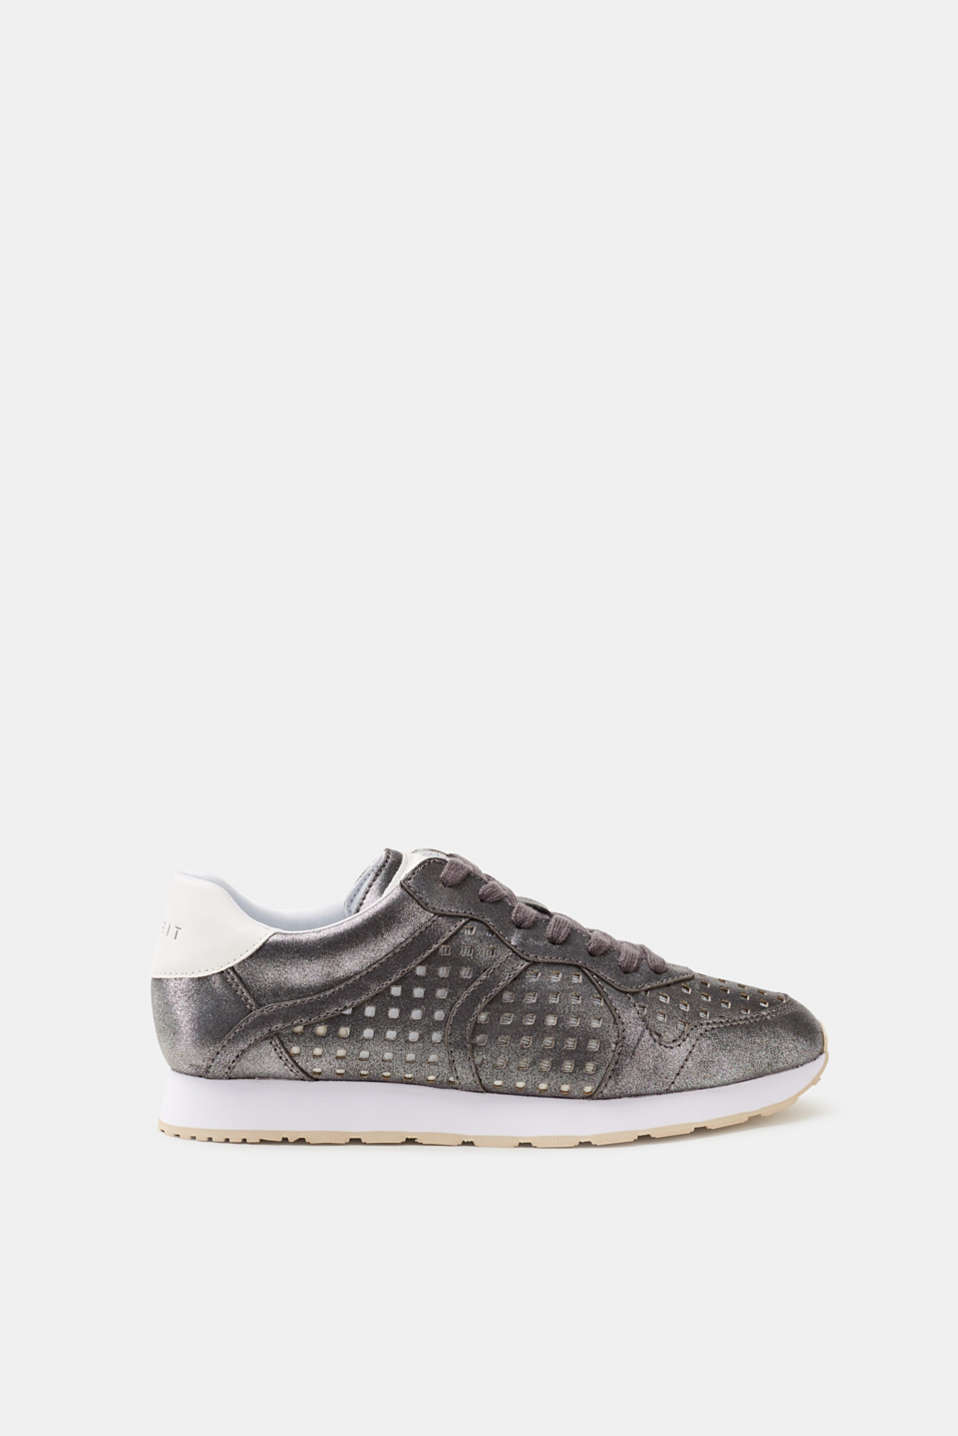 Esprit - Metallic trainers with an openwork pattern